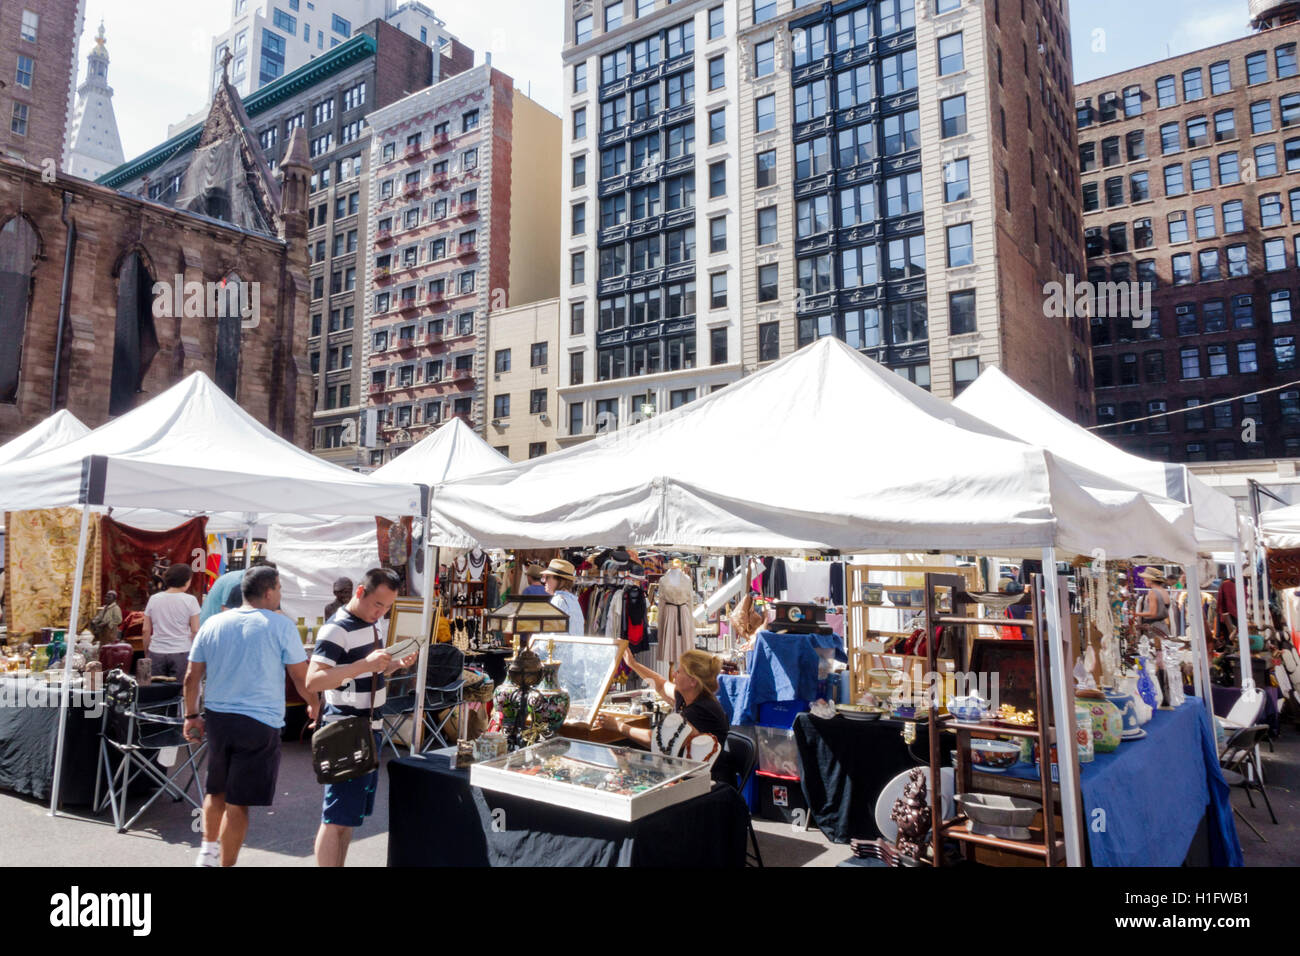 Manhattan New York City NYC NY Chelsea Chelsea Flea Market weekly open-air  market shopping antiques collectibles tent vendors booths stalls Asian woma